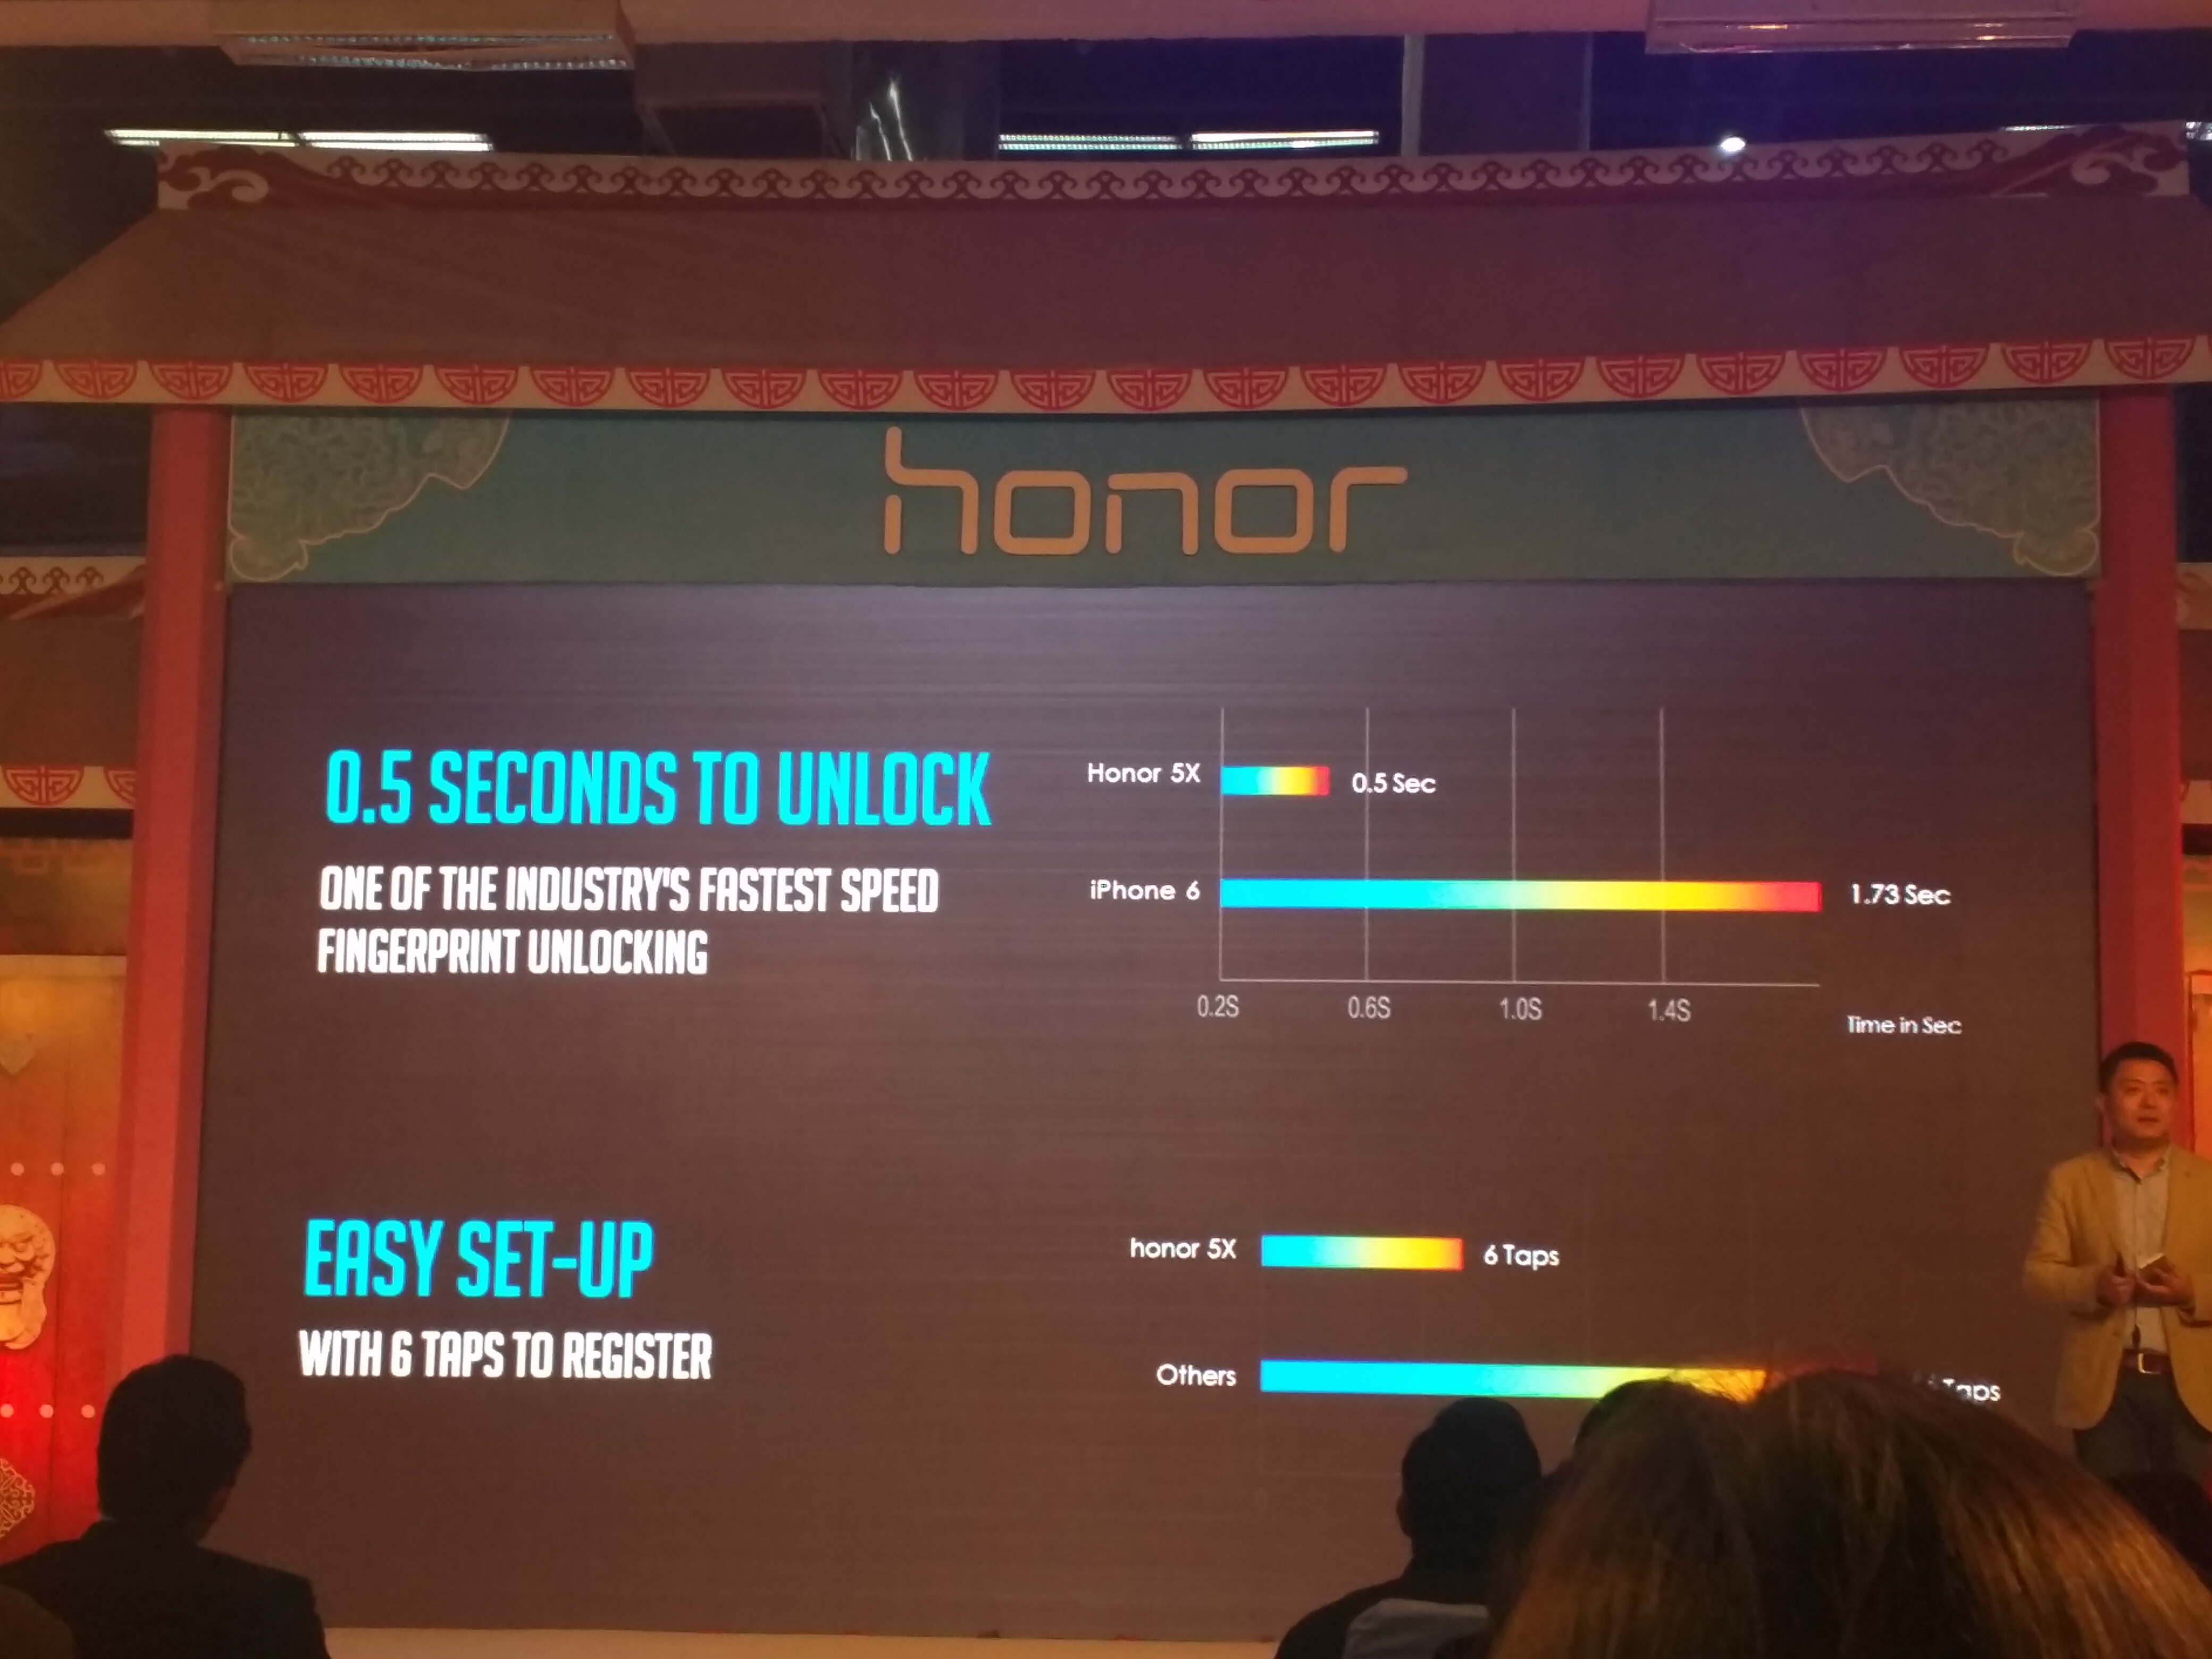 honor 5x faq pros cons user queries and answers gadgets to use. Black Bedroom Furniture Sets. Home Design Ideas